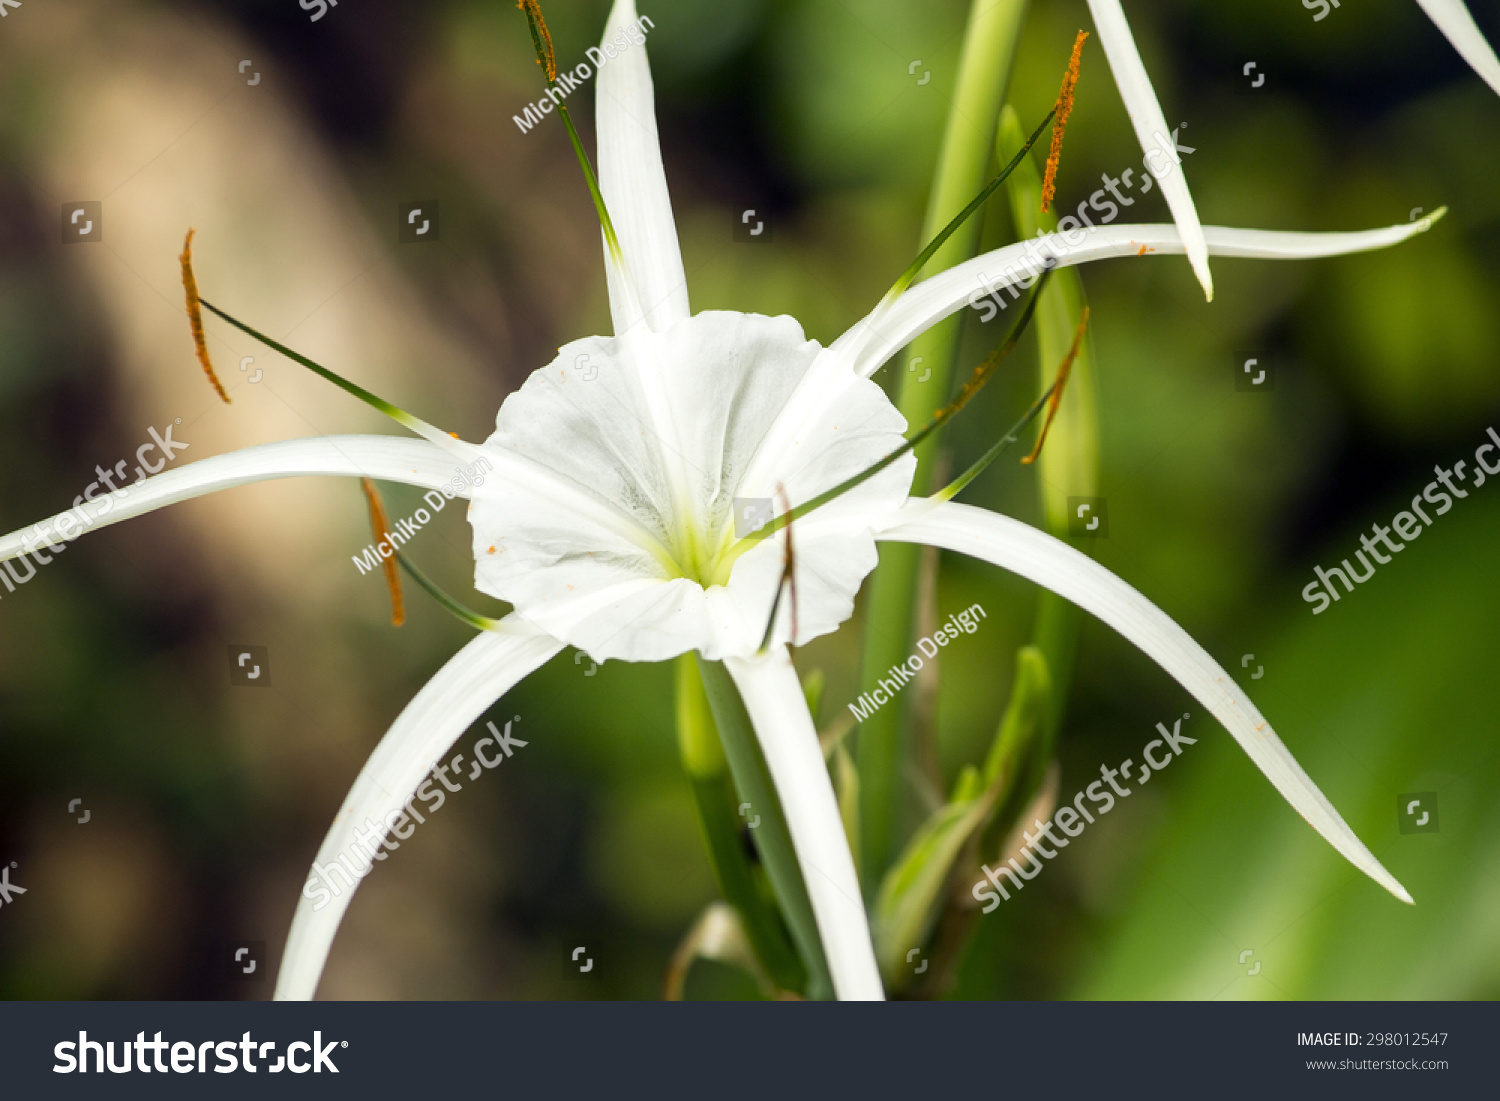 White lily like flower has long stock photo edit now 298012547 white lily like flower has long skinny petals spider lily izmirmasajfo